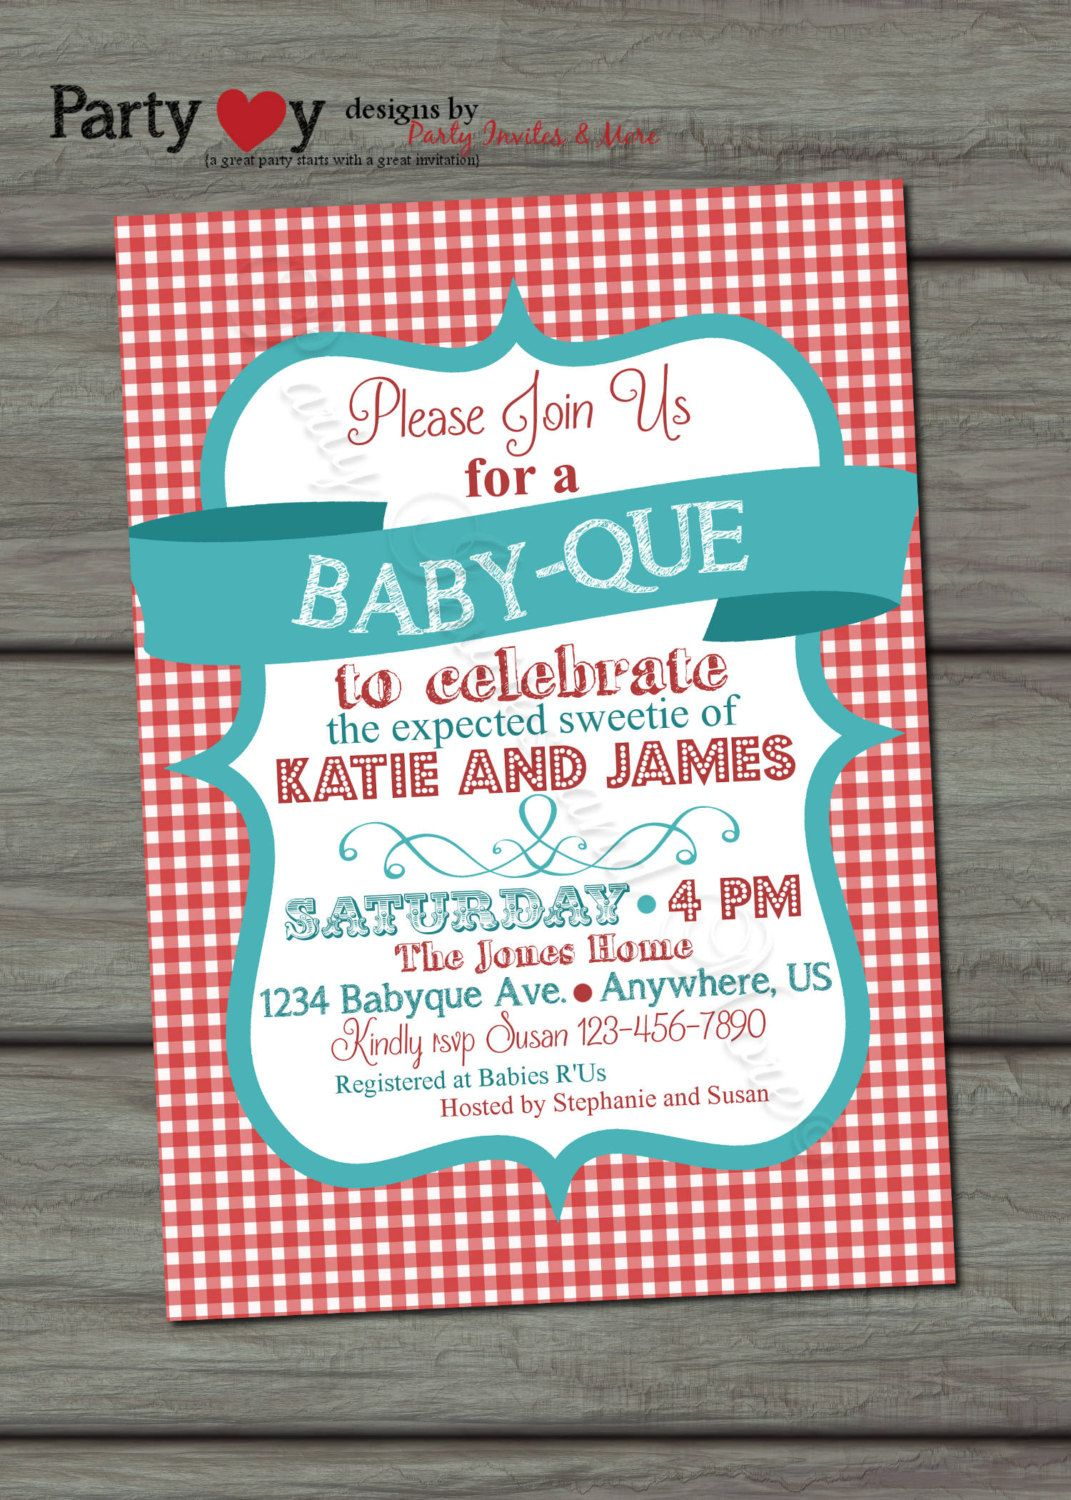 BBQ Joint Baby Shower Digital Print File 800 via Etsy